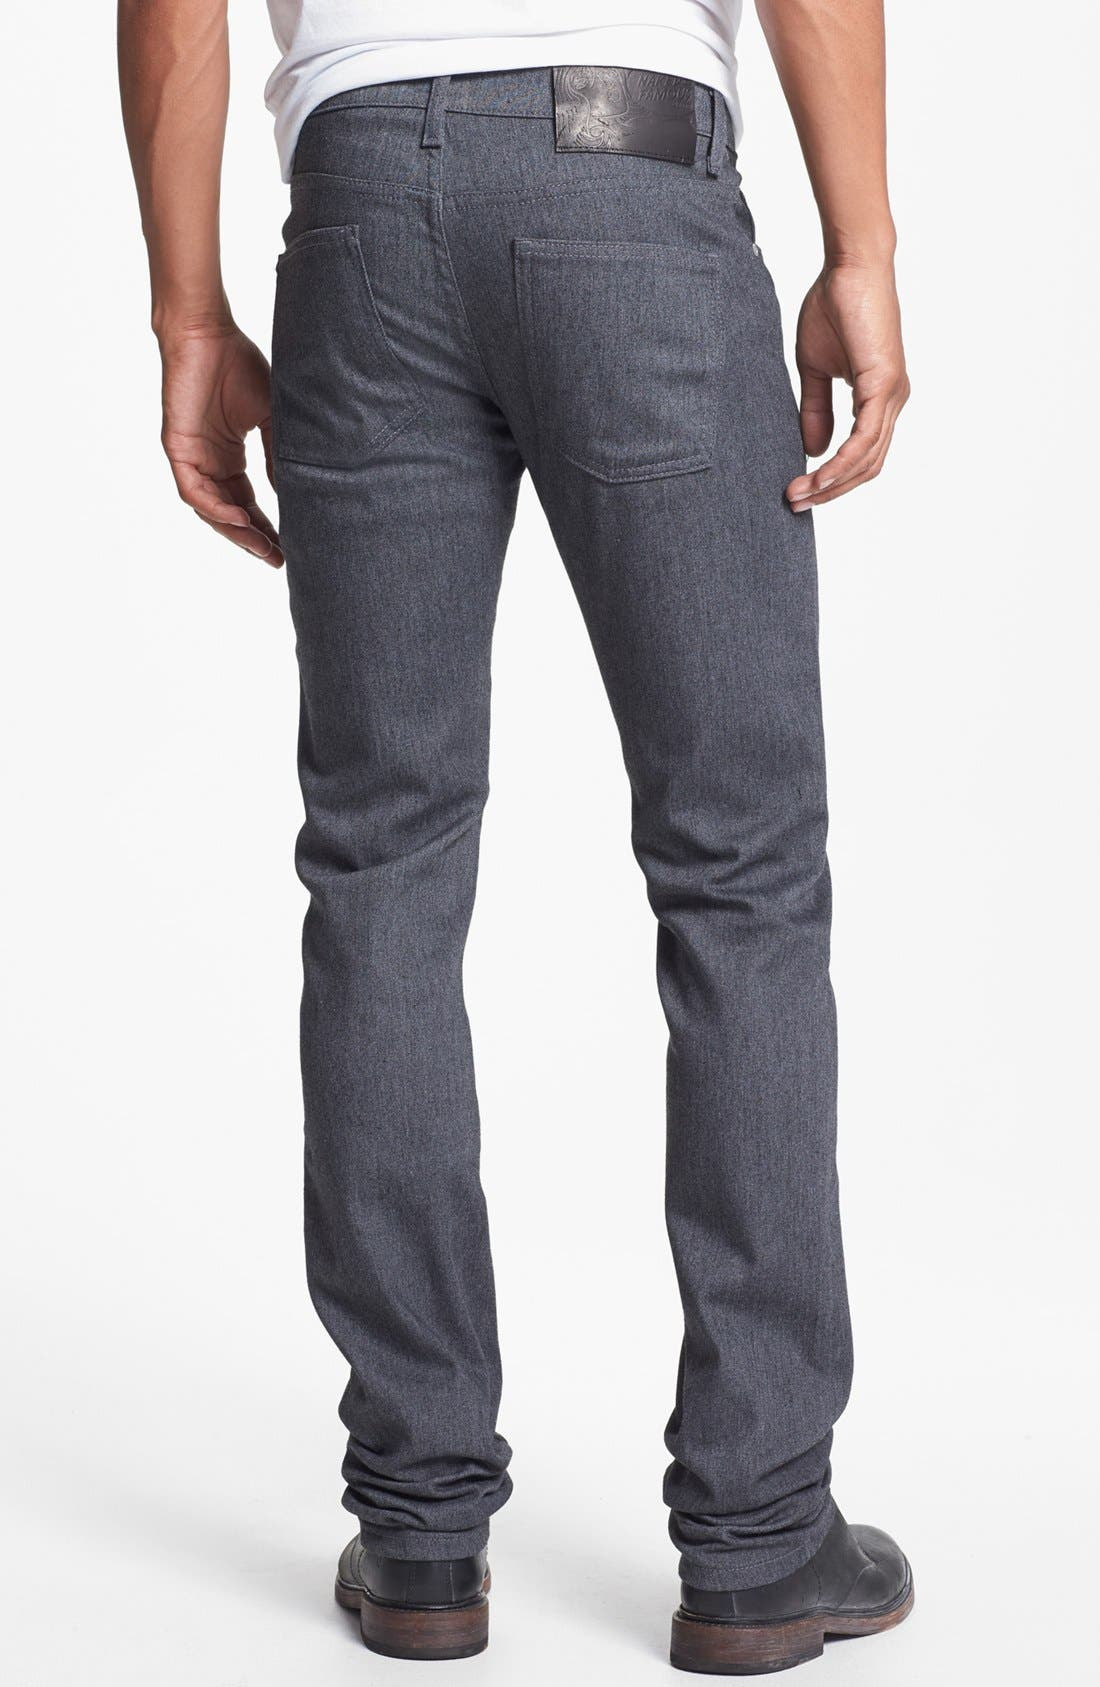 Alternate Image 1 Selected - Naked & Famous Denim 'Skinny Guy' Skinny Fit Jeans (Heather Grey Stretch)